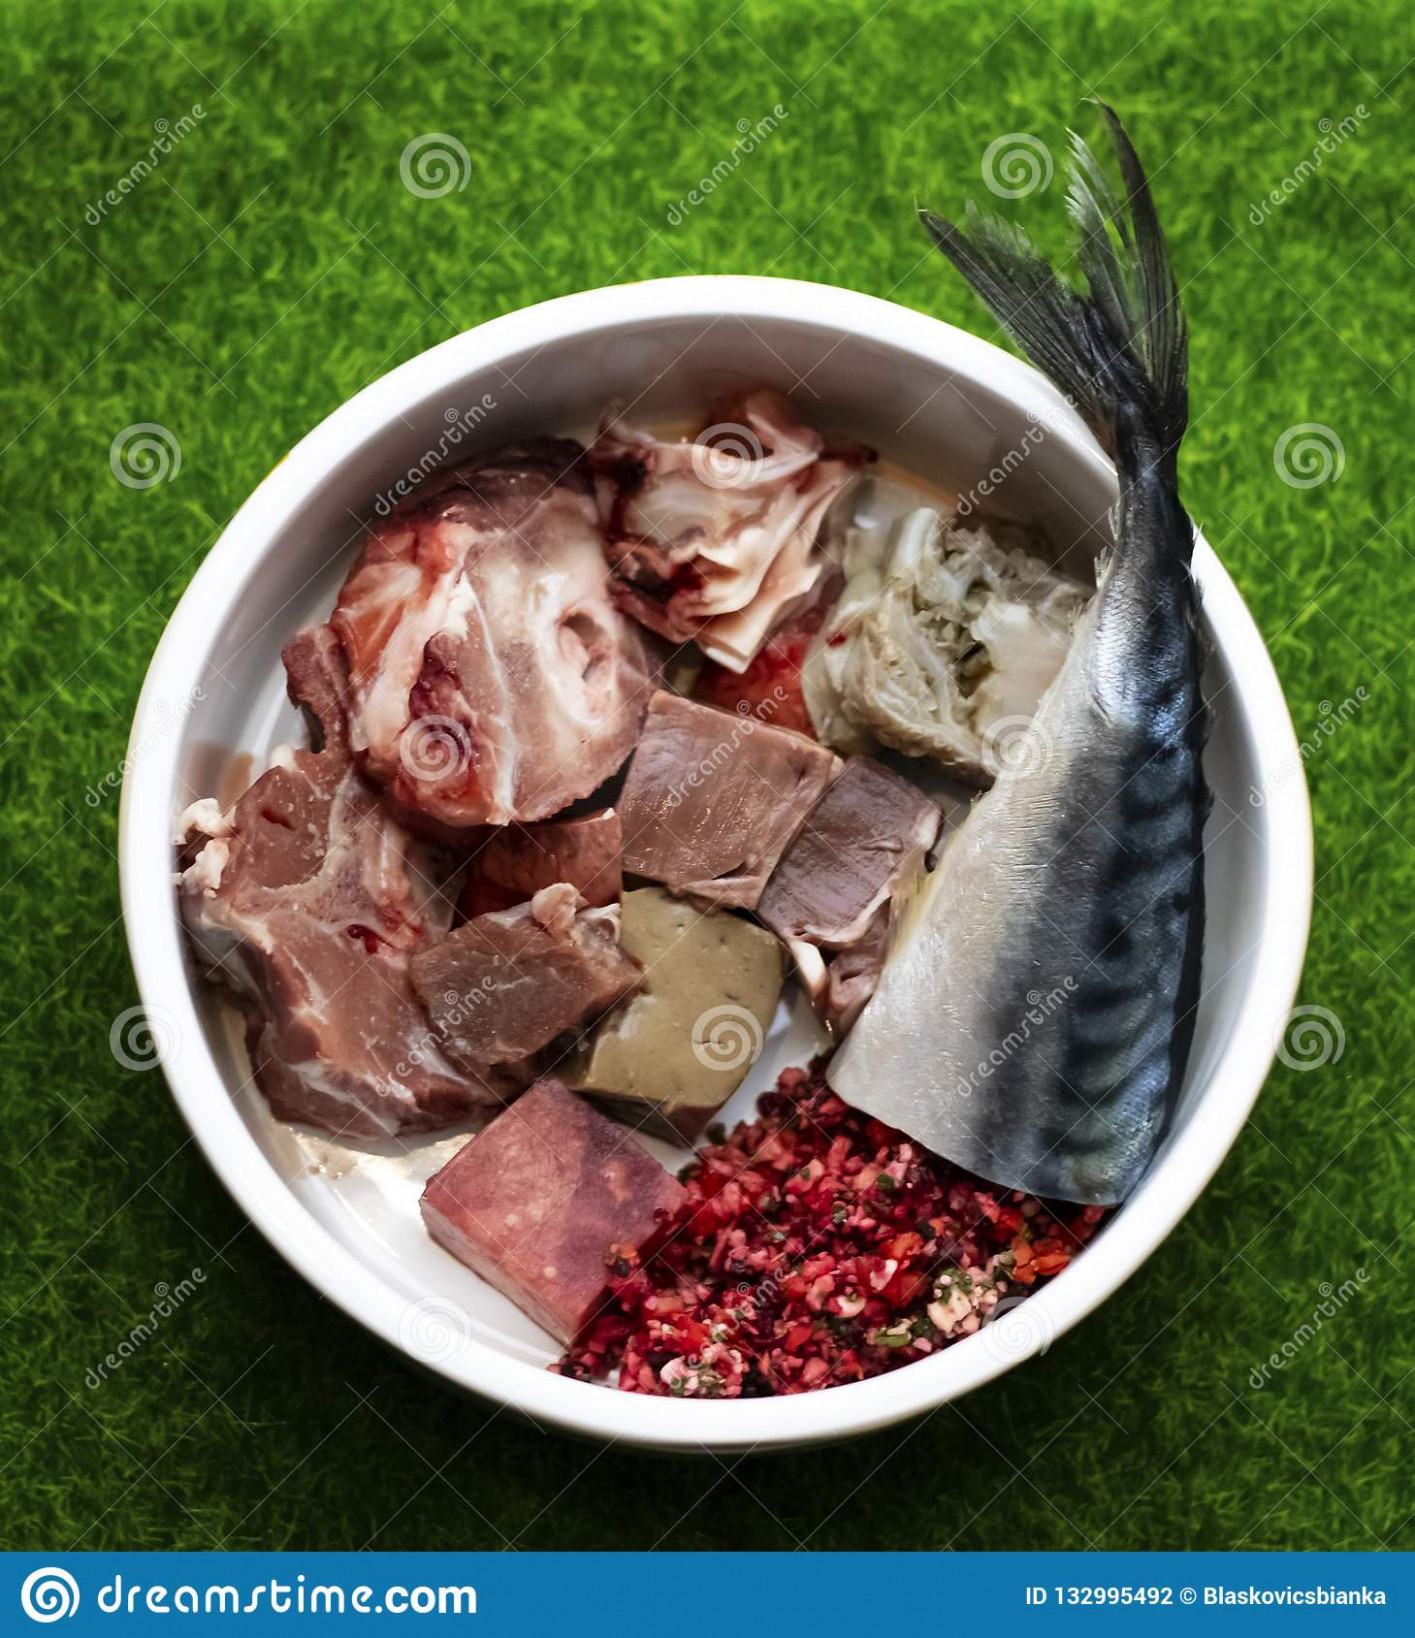 Raw pet food menu stock photo. Image of dogfood, food ..